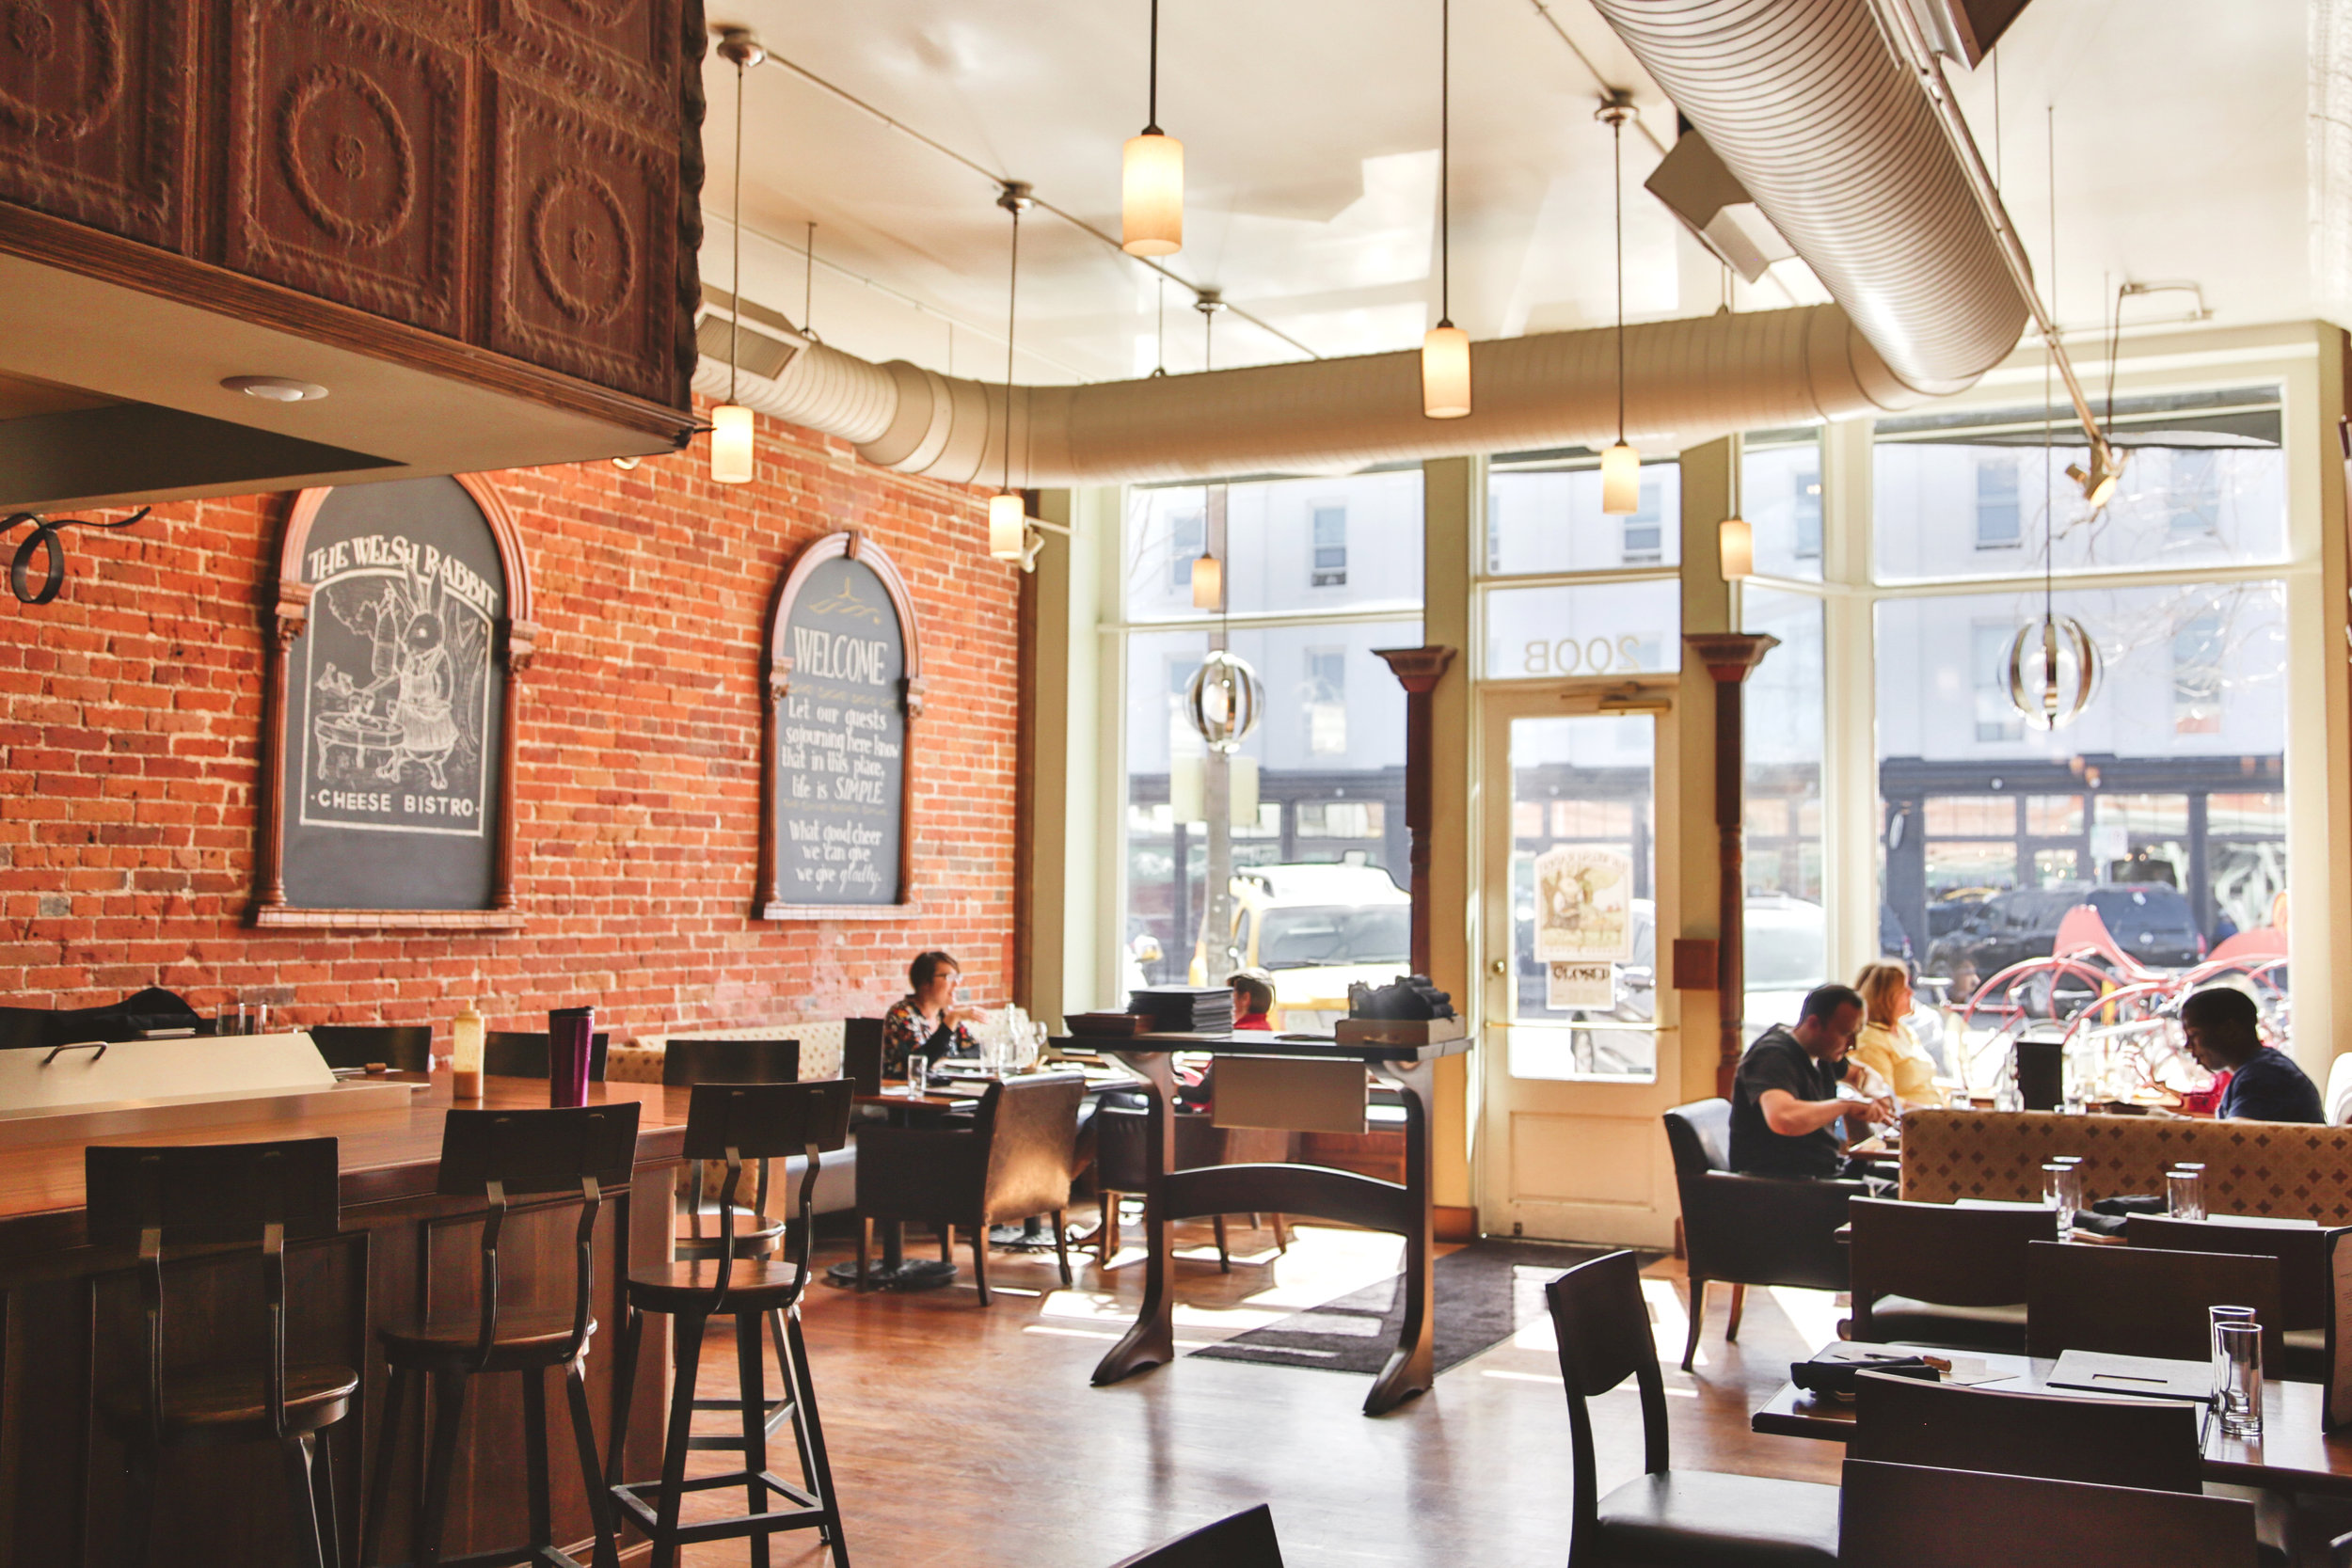 Dining at our Bistro? -